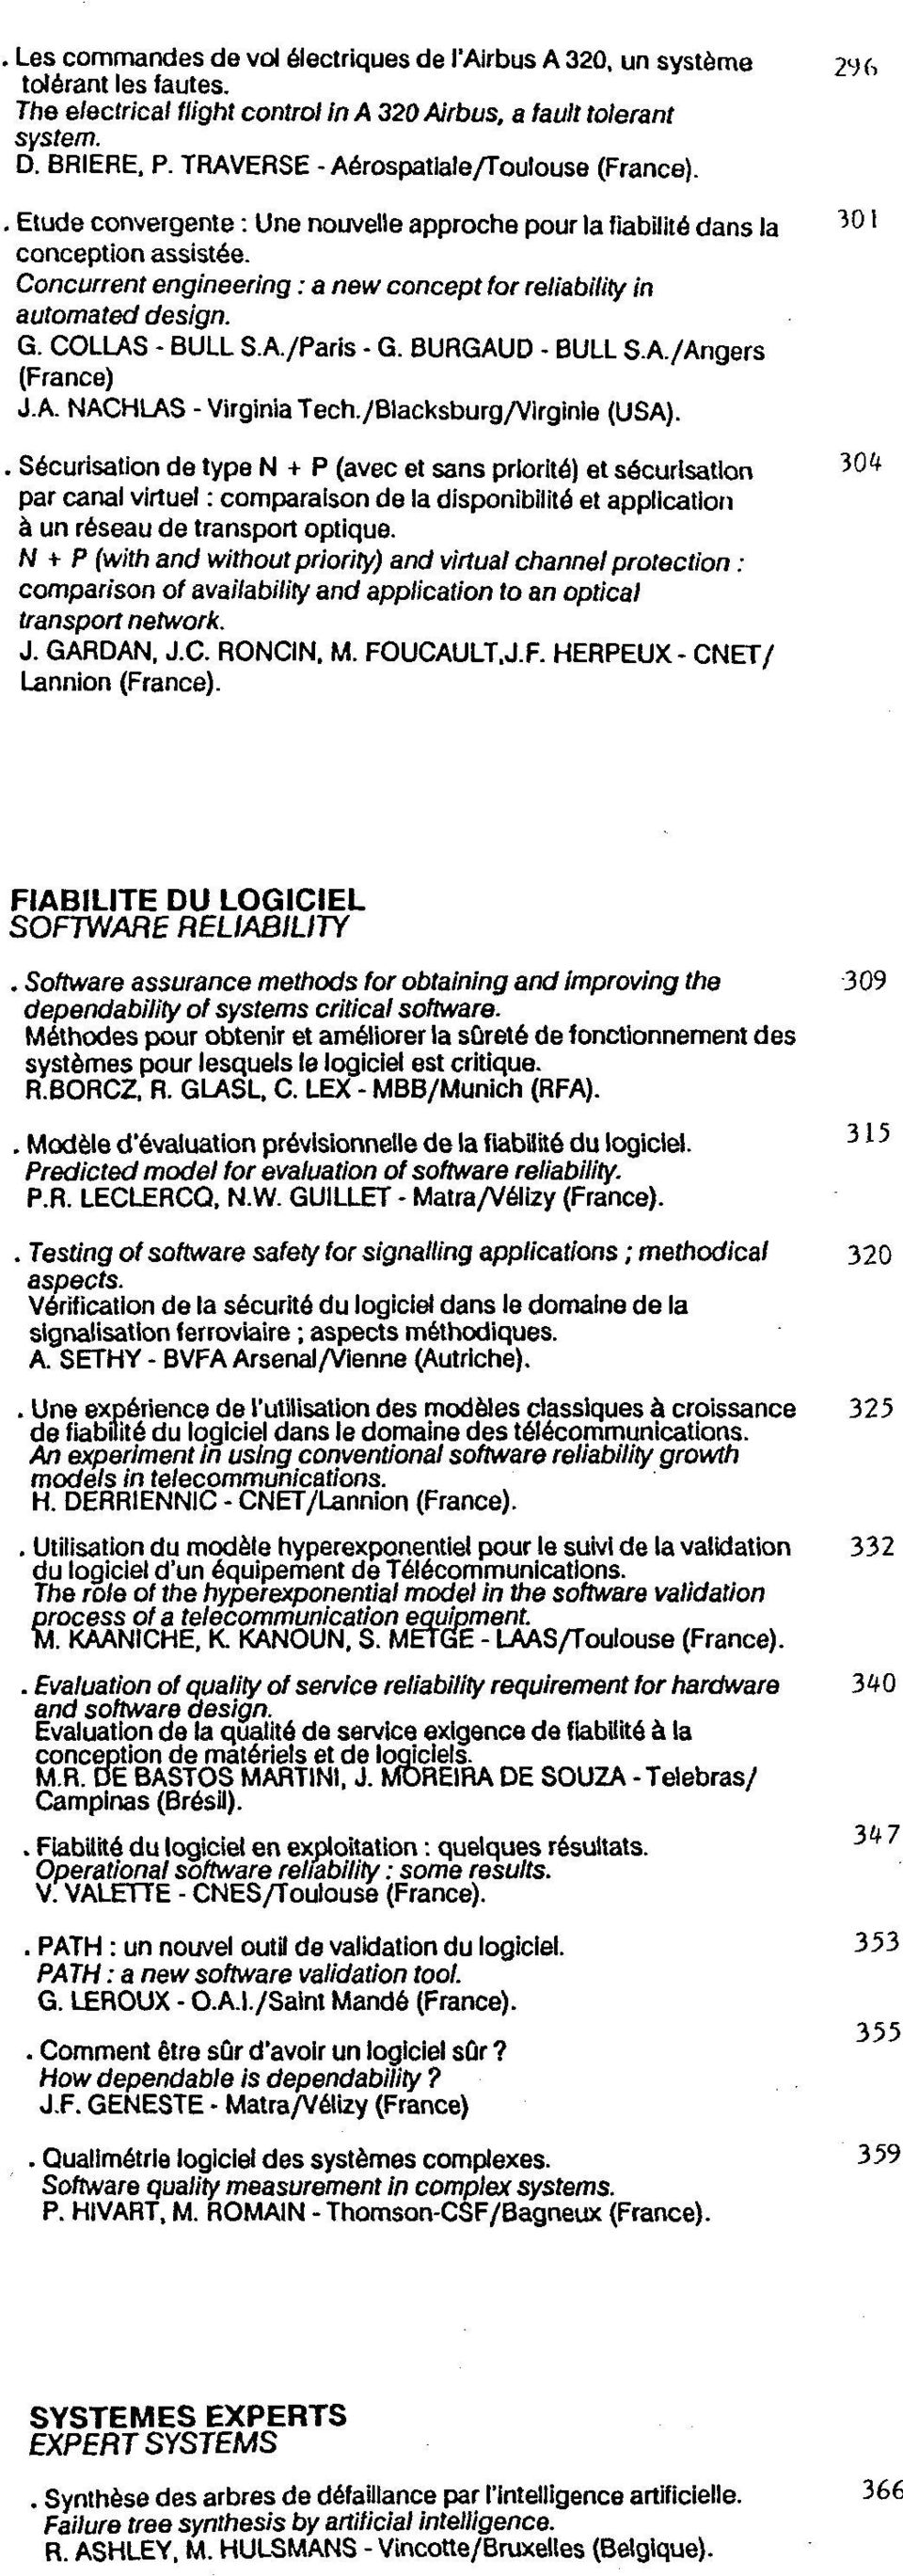 Concurrent engineering: a new concept for reliability in automated design. G. COLLAS - BULL S.A./Paris - G. BURGAUD - BULL S.A./Angers (France) J.A. NACHLAS -Virginia Tech./Blacksburg/Virginie (USA).